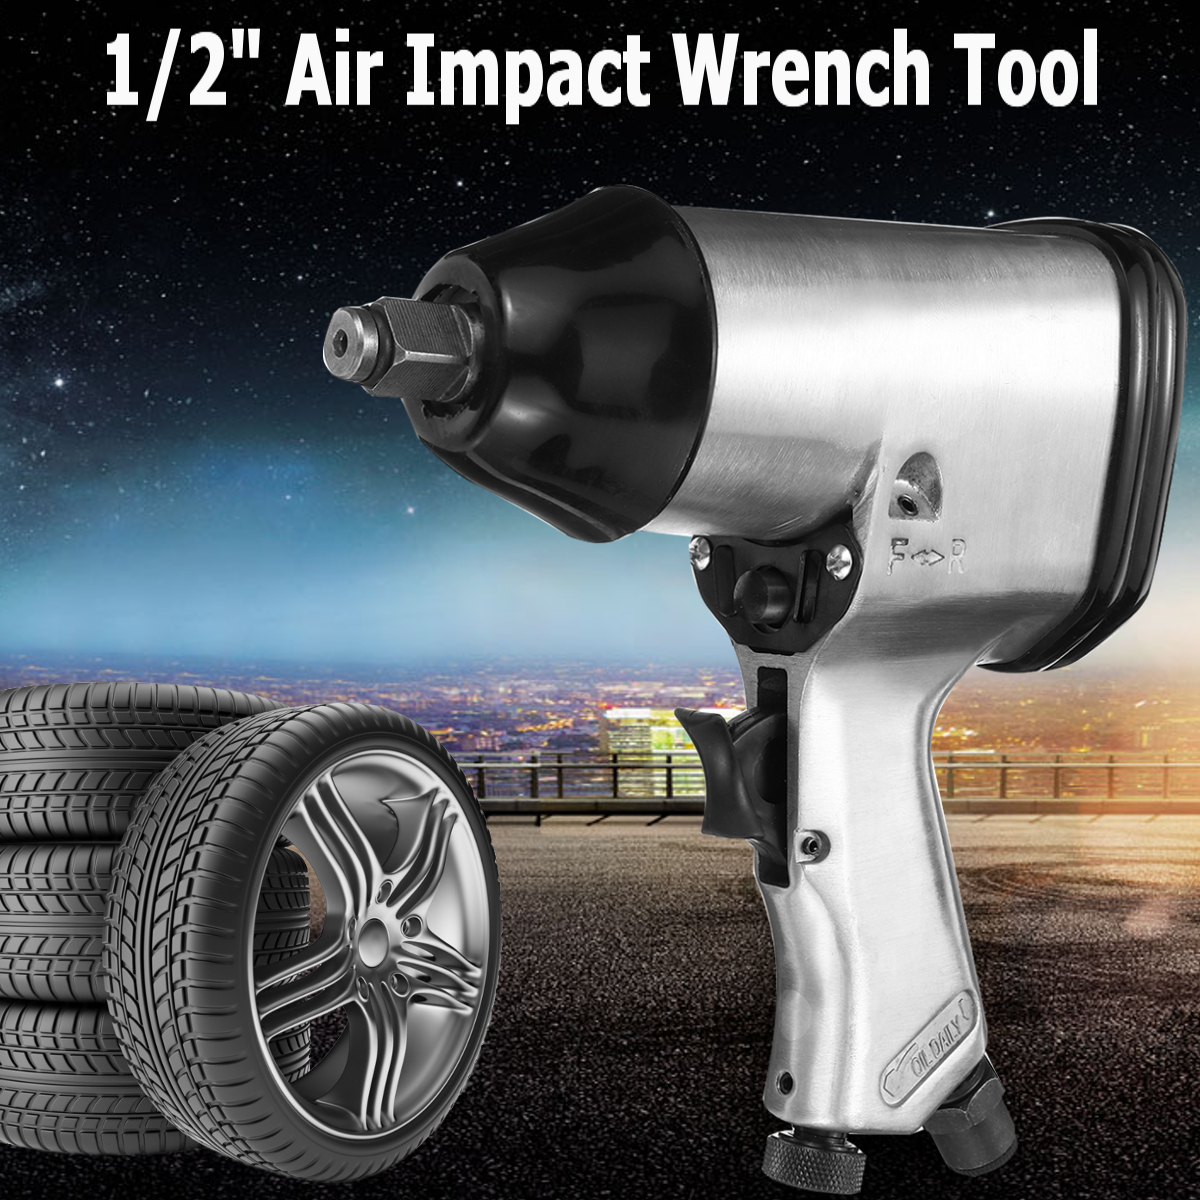 1/2Drive Heavy Duty Pneumatic Air Impact Wrench Tool For Car Wheel Repairing Die Cast Aluminum High Torque Low Noise 4CFM@90PSI pneumatic impact wrench 1 2 pneumatic gun air pressure wrench tool torque 650ft lb set with sleeve